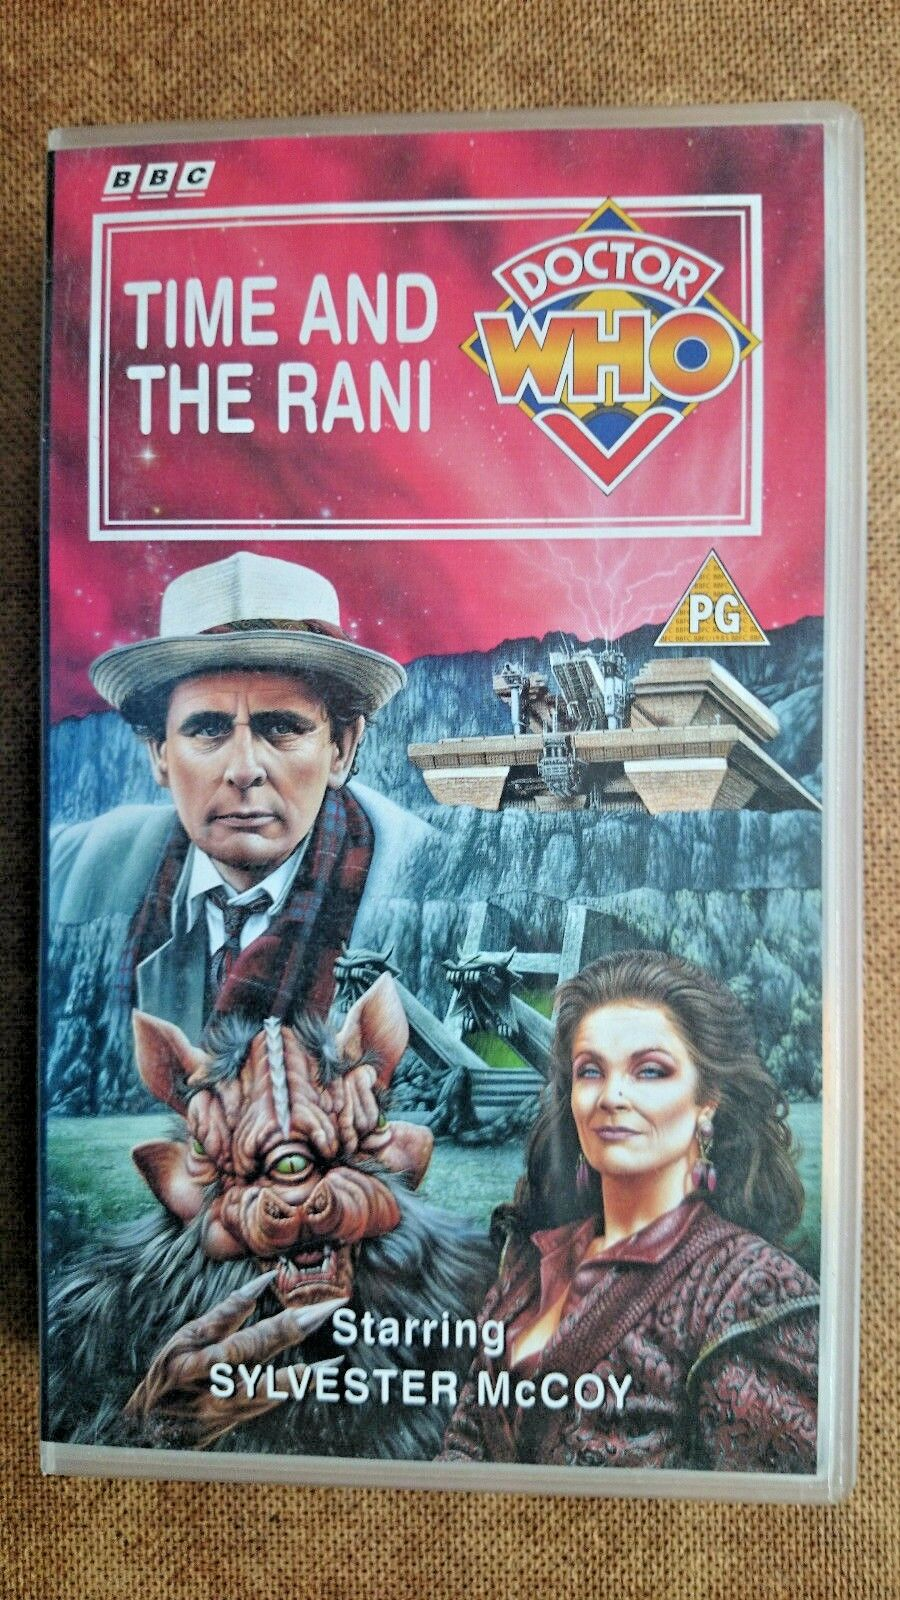 Doctor Who - Time And The Rani (VHS, 1995) - Sylvester McCoy